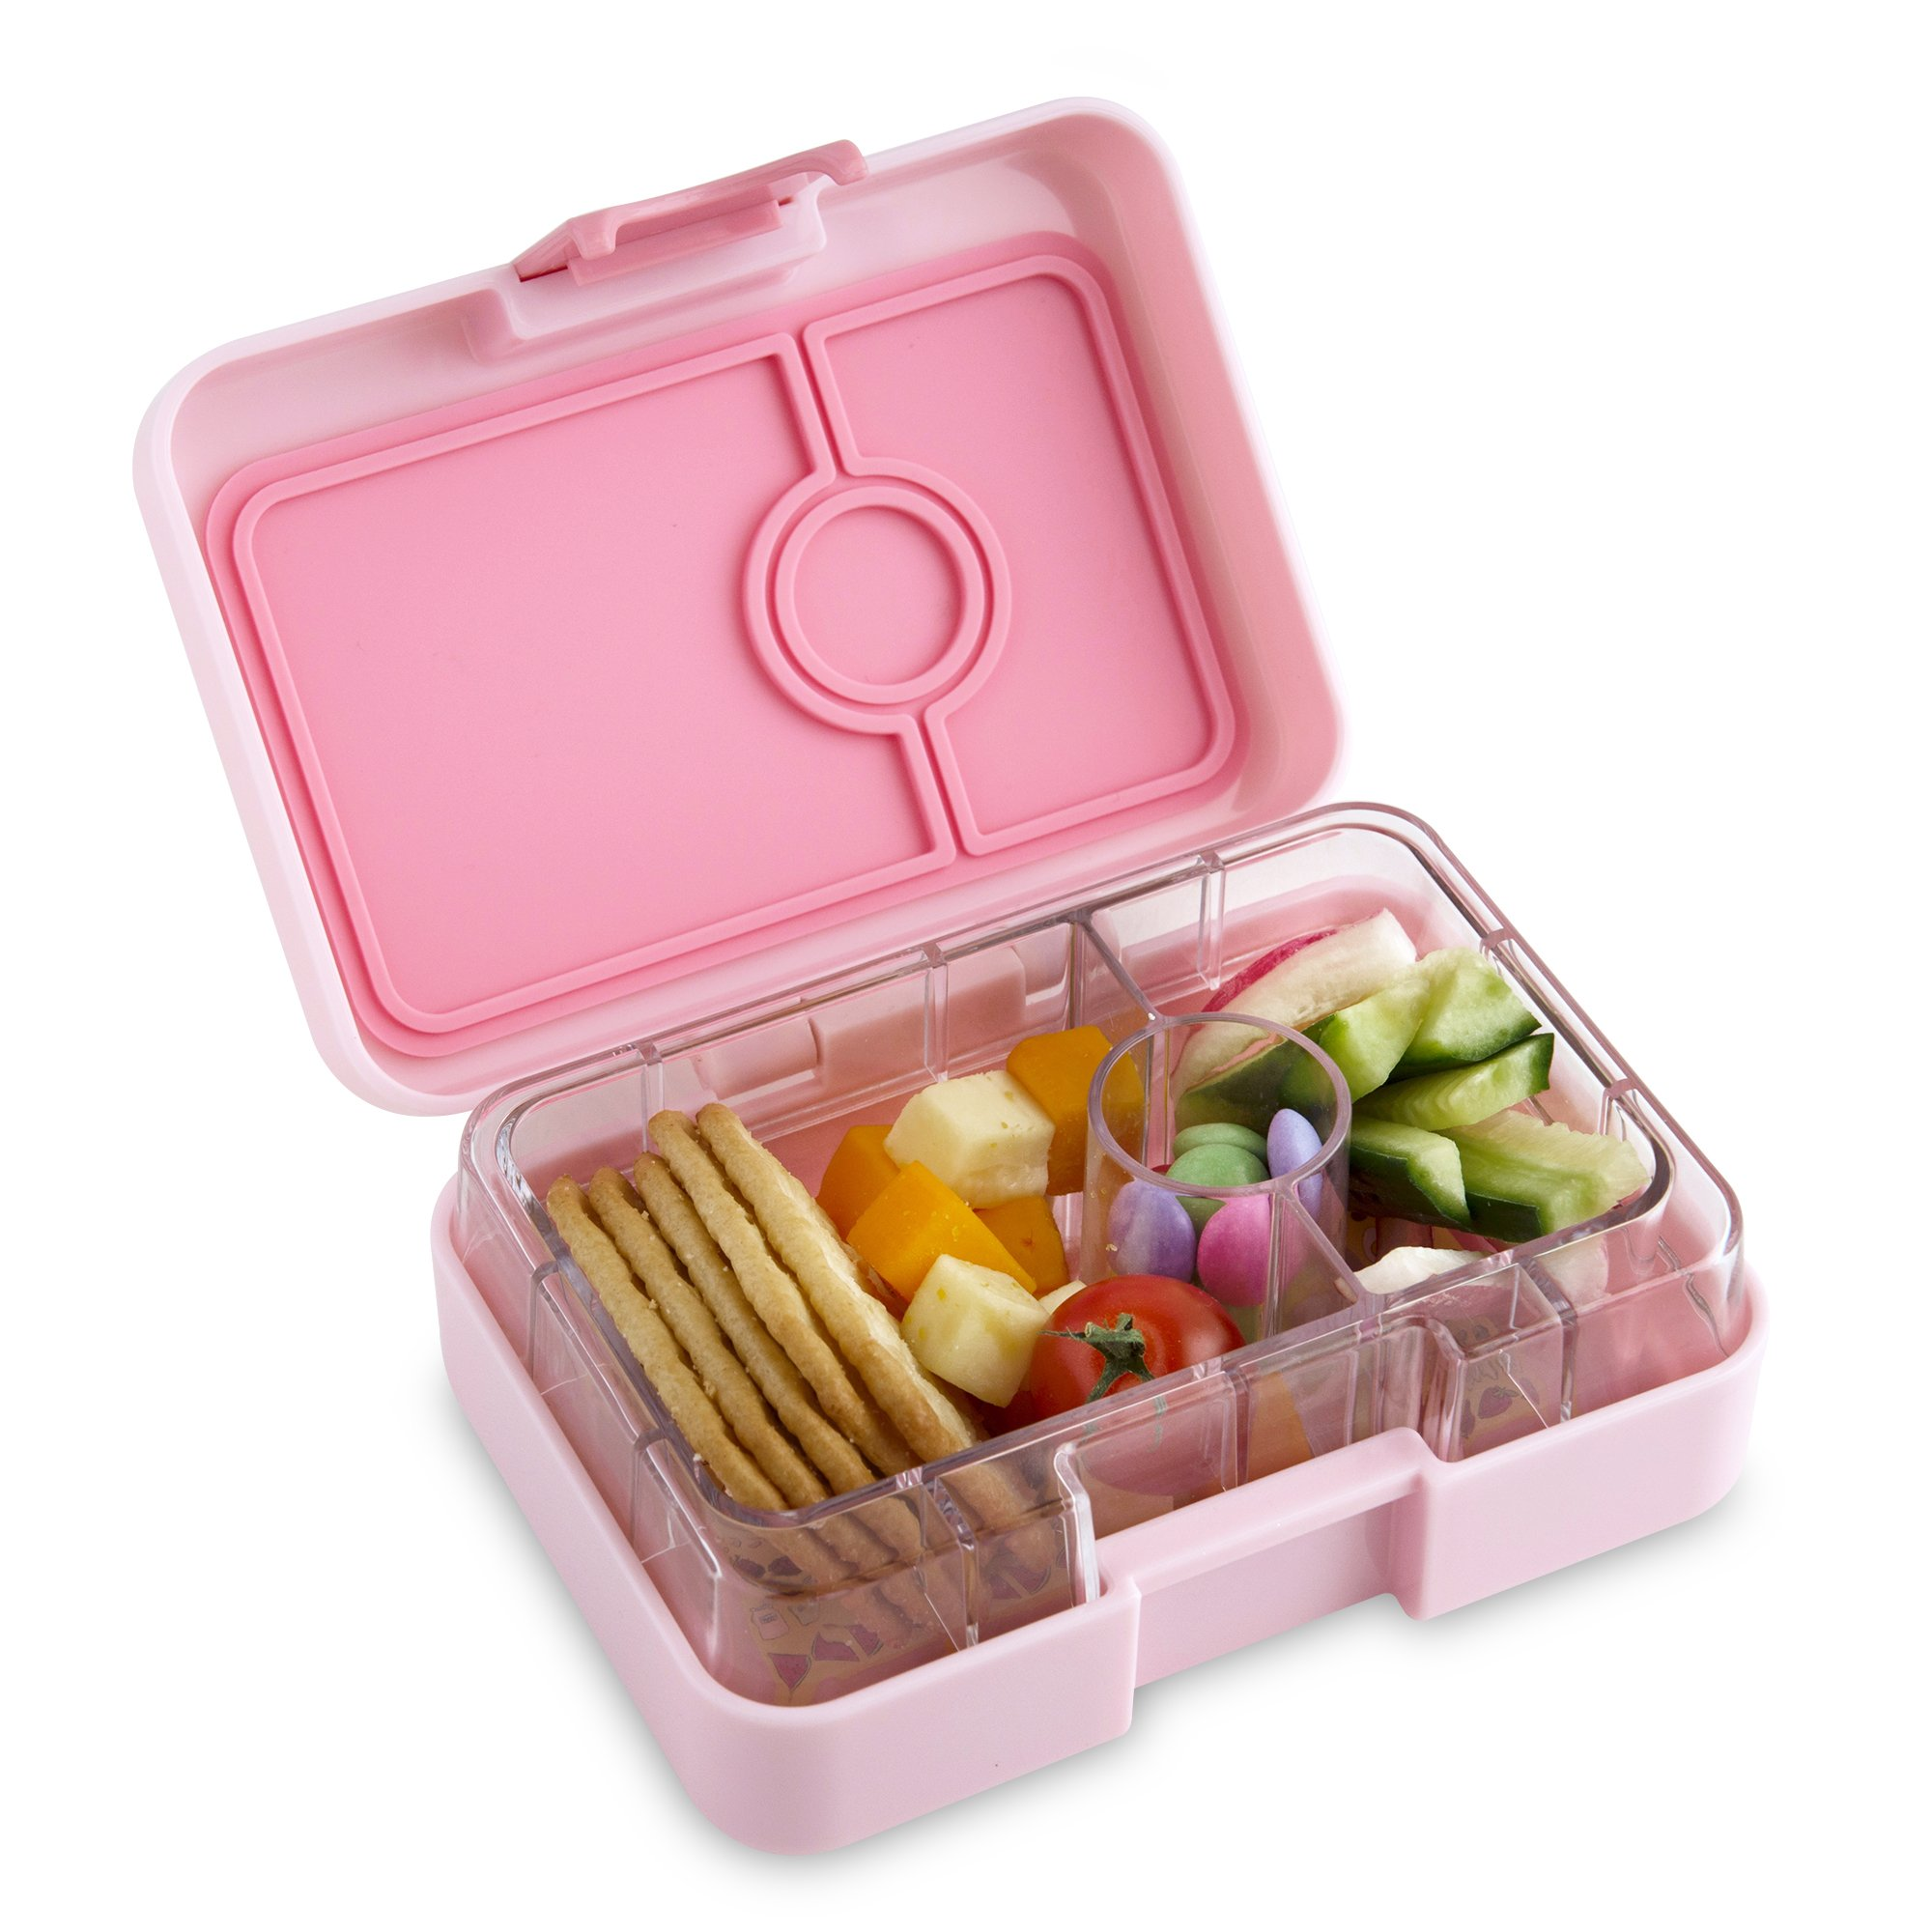 YUMBOX MiniSnack Leakproof Snack Box (Hollywood Coco Pink); Bento-style snack box offers Durable, Leak-proof, On-the-go Meal and Snack Packing